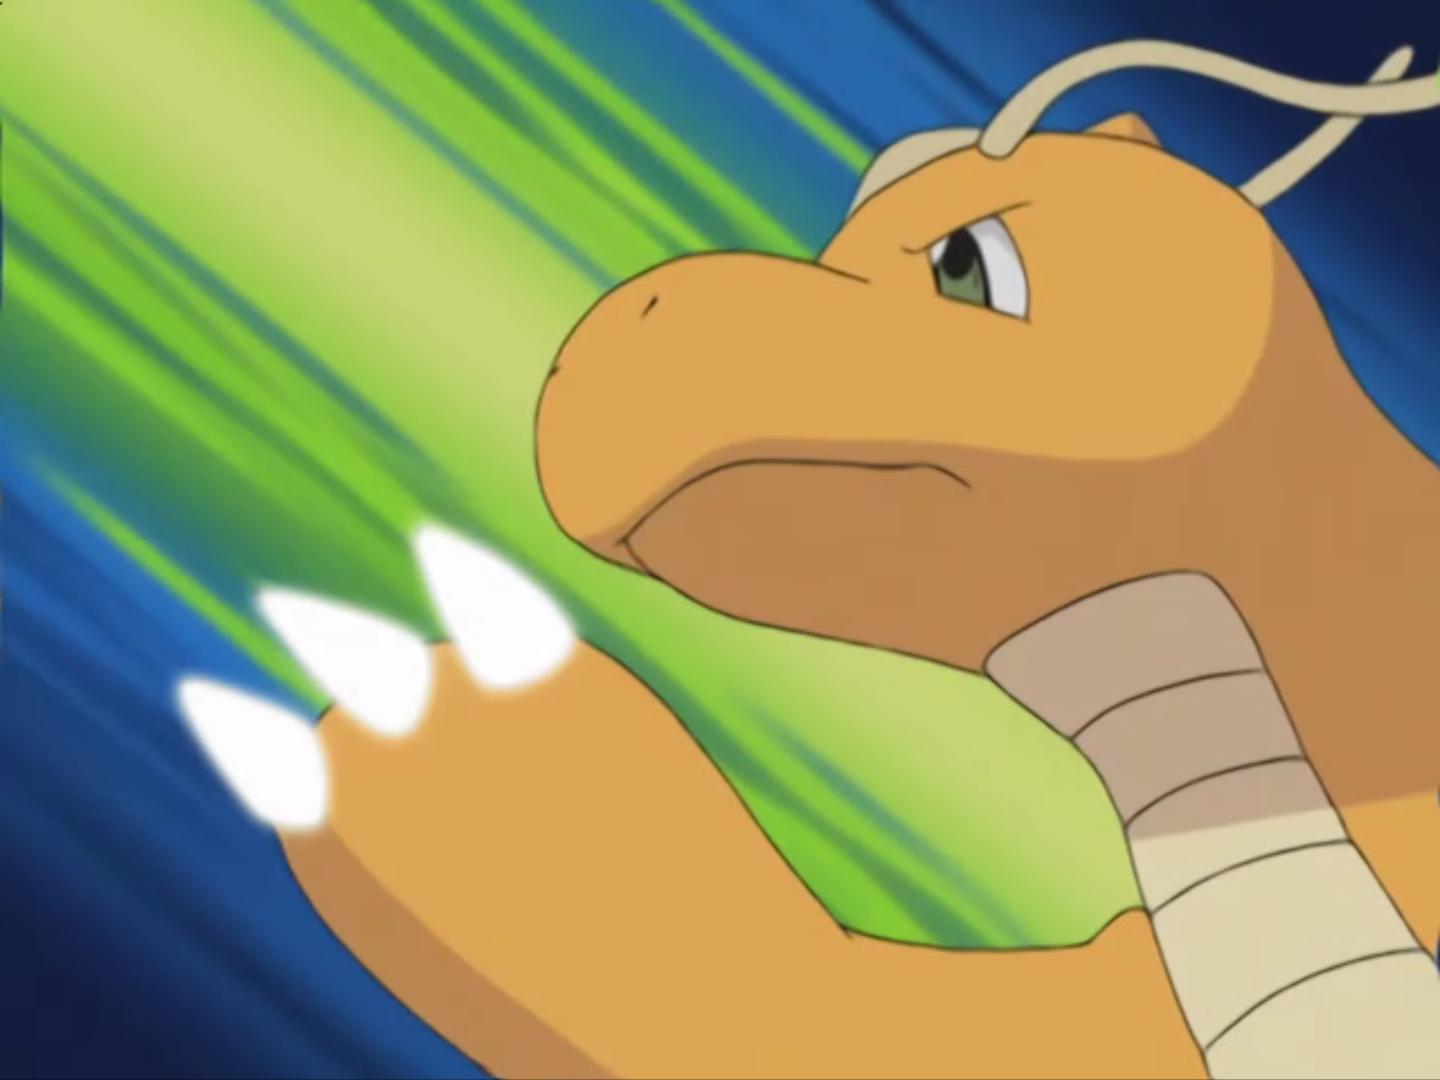 Can Dragonite learn dragon claw - answers.com